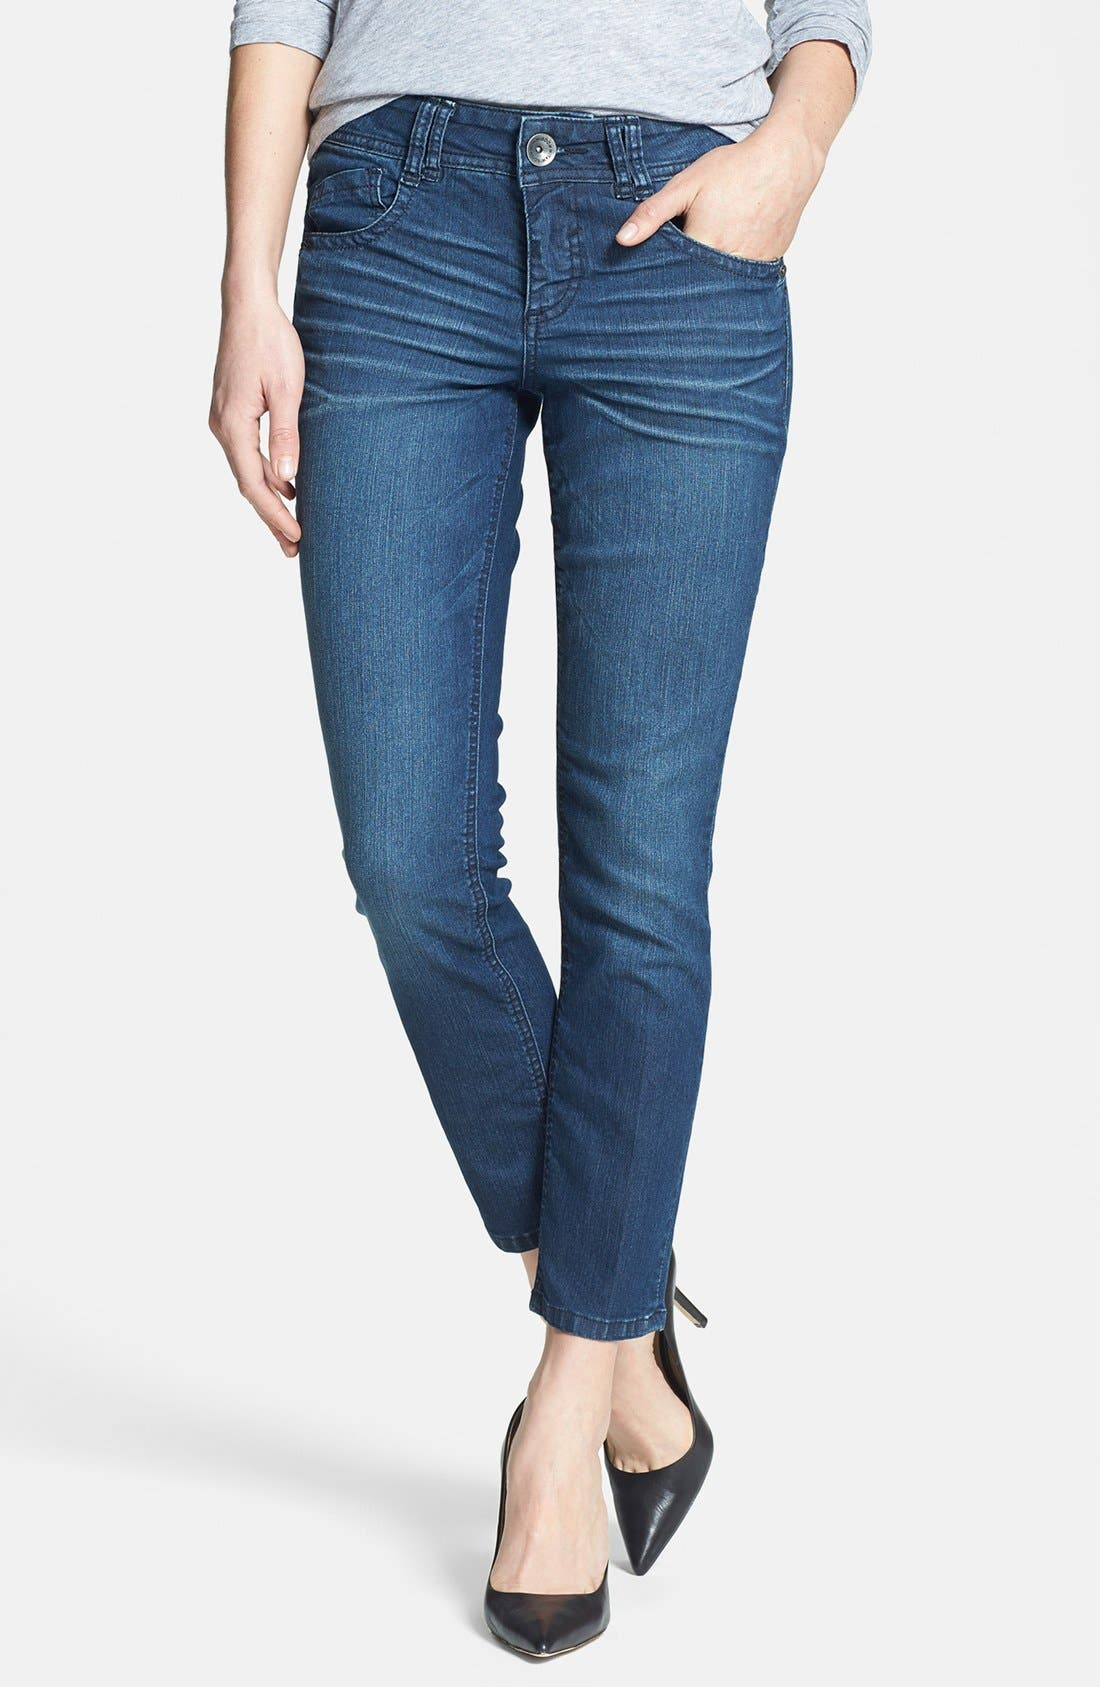 Alternate Image 1 Selected - Wit & Wisdom Stretch Ankle Skinny Jeans (Tencel Indigo) (Nordstrom Exclusive)